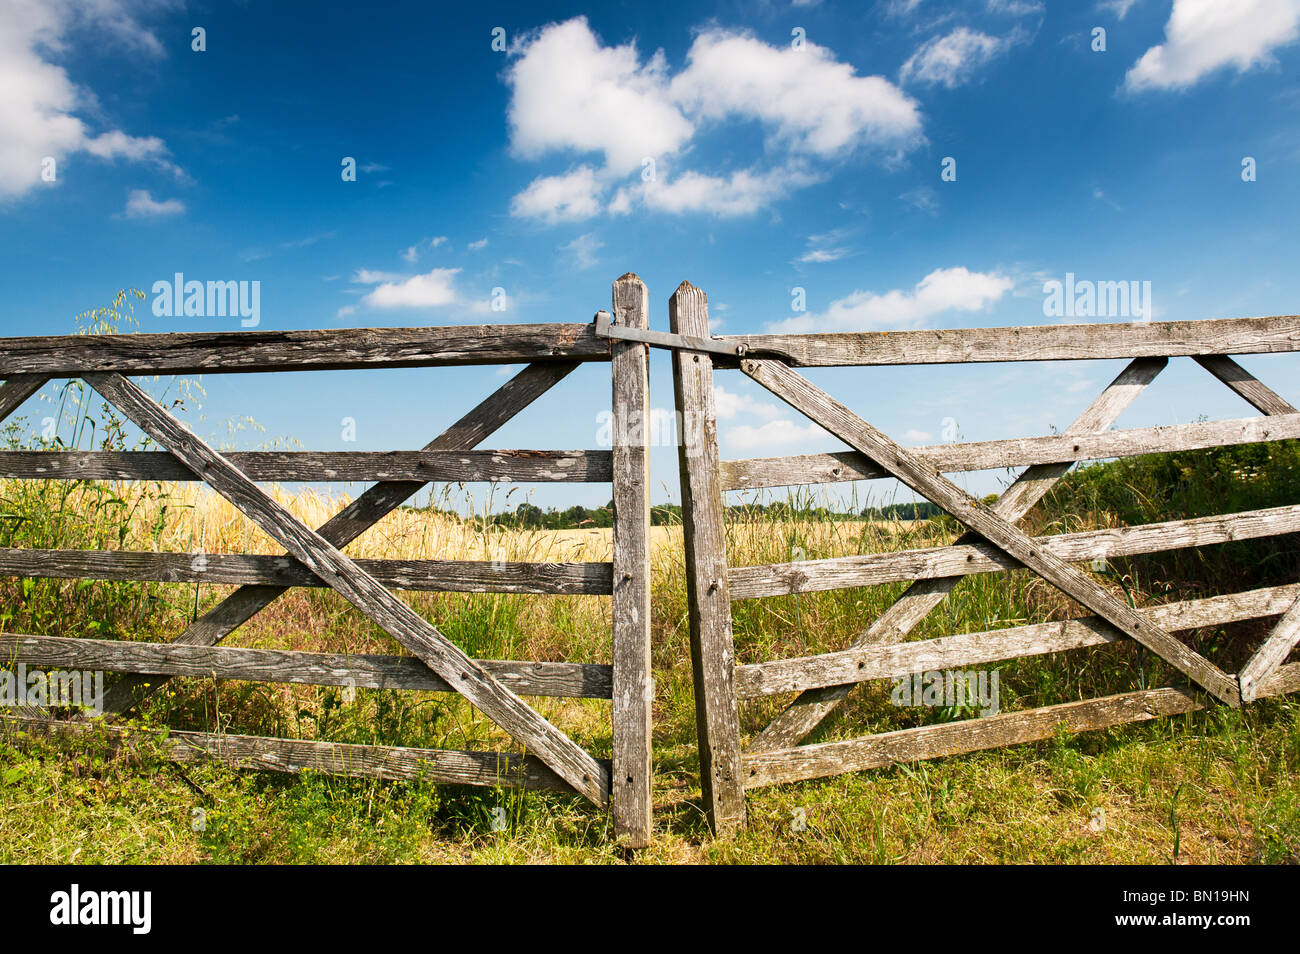 Old five bar wooden gates in front of a field of barley in the english countryside. Oxfordshire, England - Stock Image